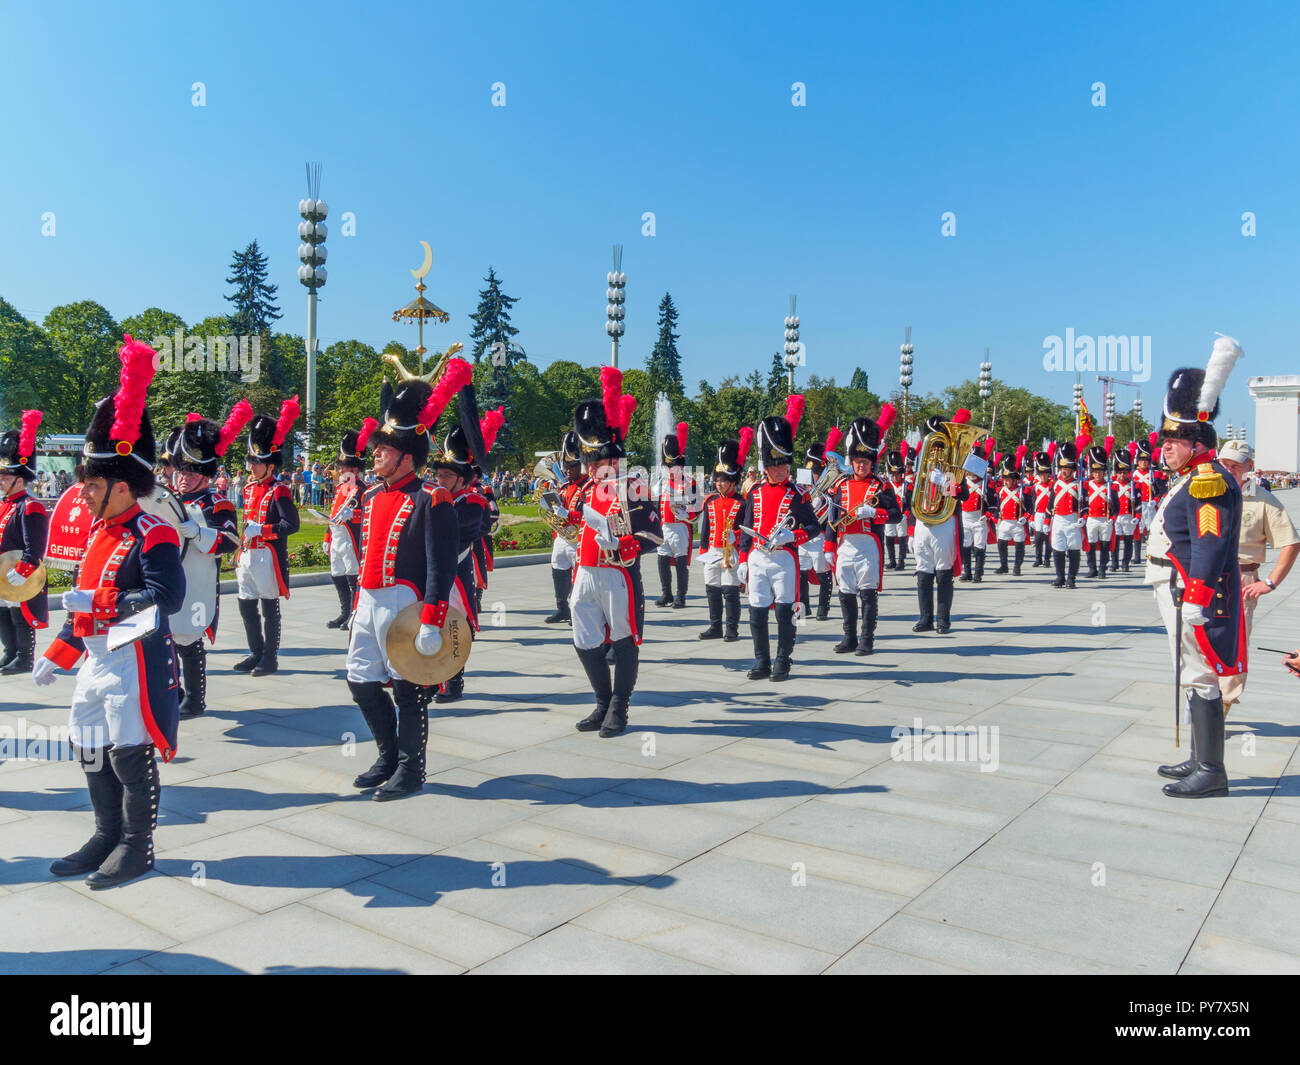 MOSCOW, RUSSIA - AUGUST 25, 2018: The festive procession of the Spasskaya Tower International Military Music Festival participants at VDNKH. Stock Photo